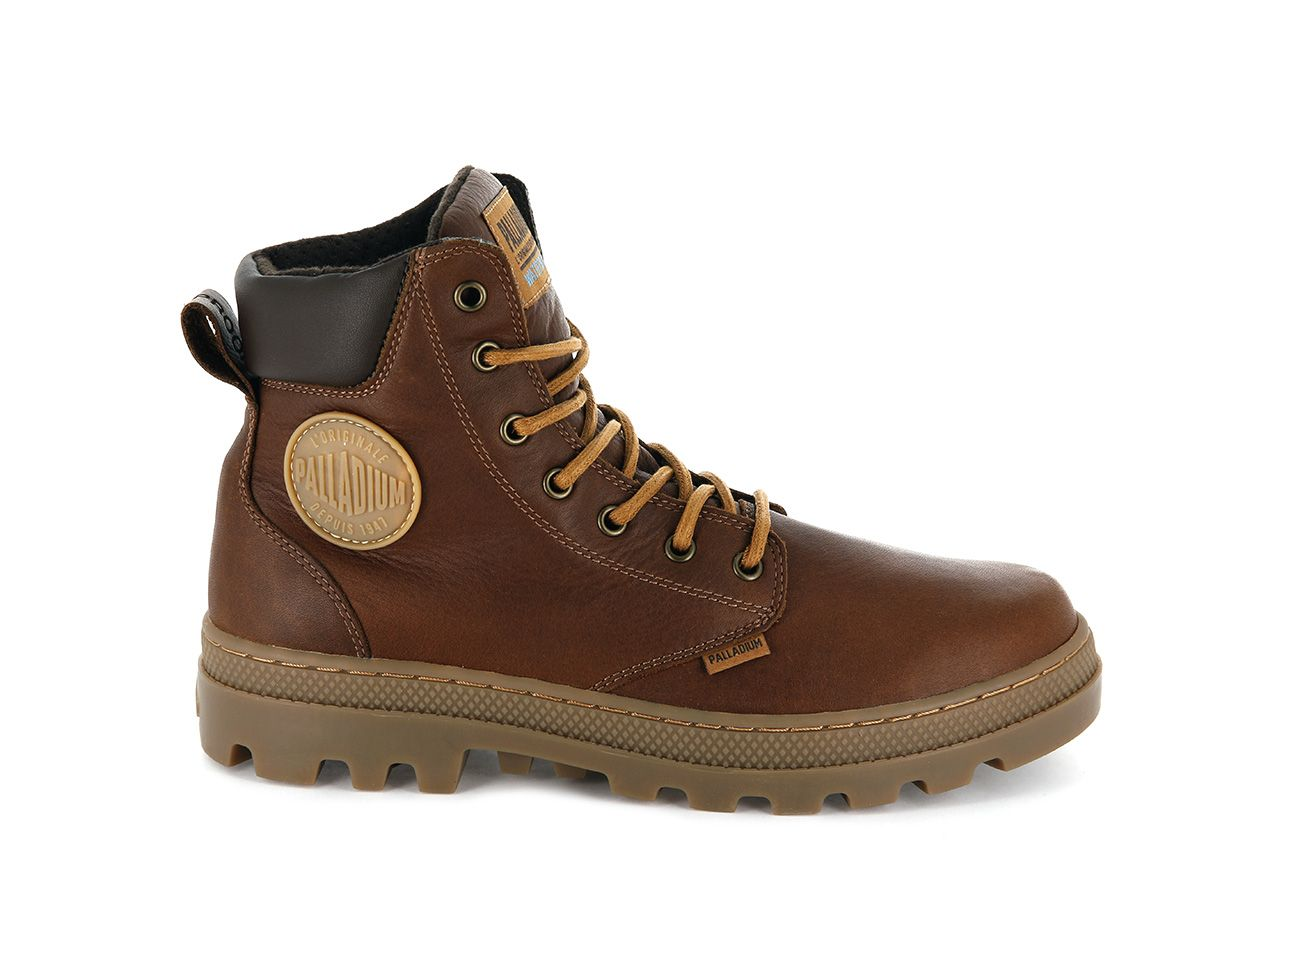 Palladium Pallabosse SC WP Leather in Cathay Spice/Chocolate Brown/Mid Gum